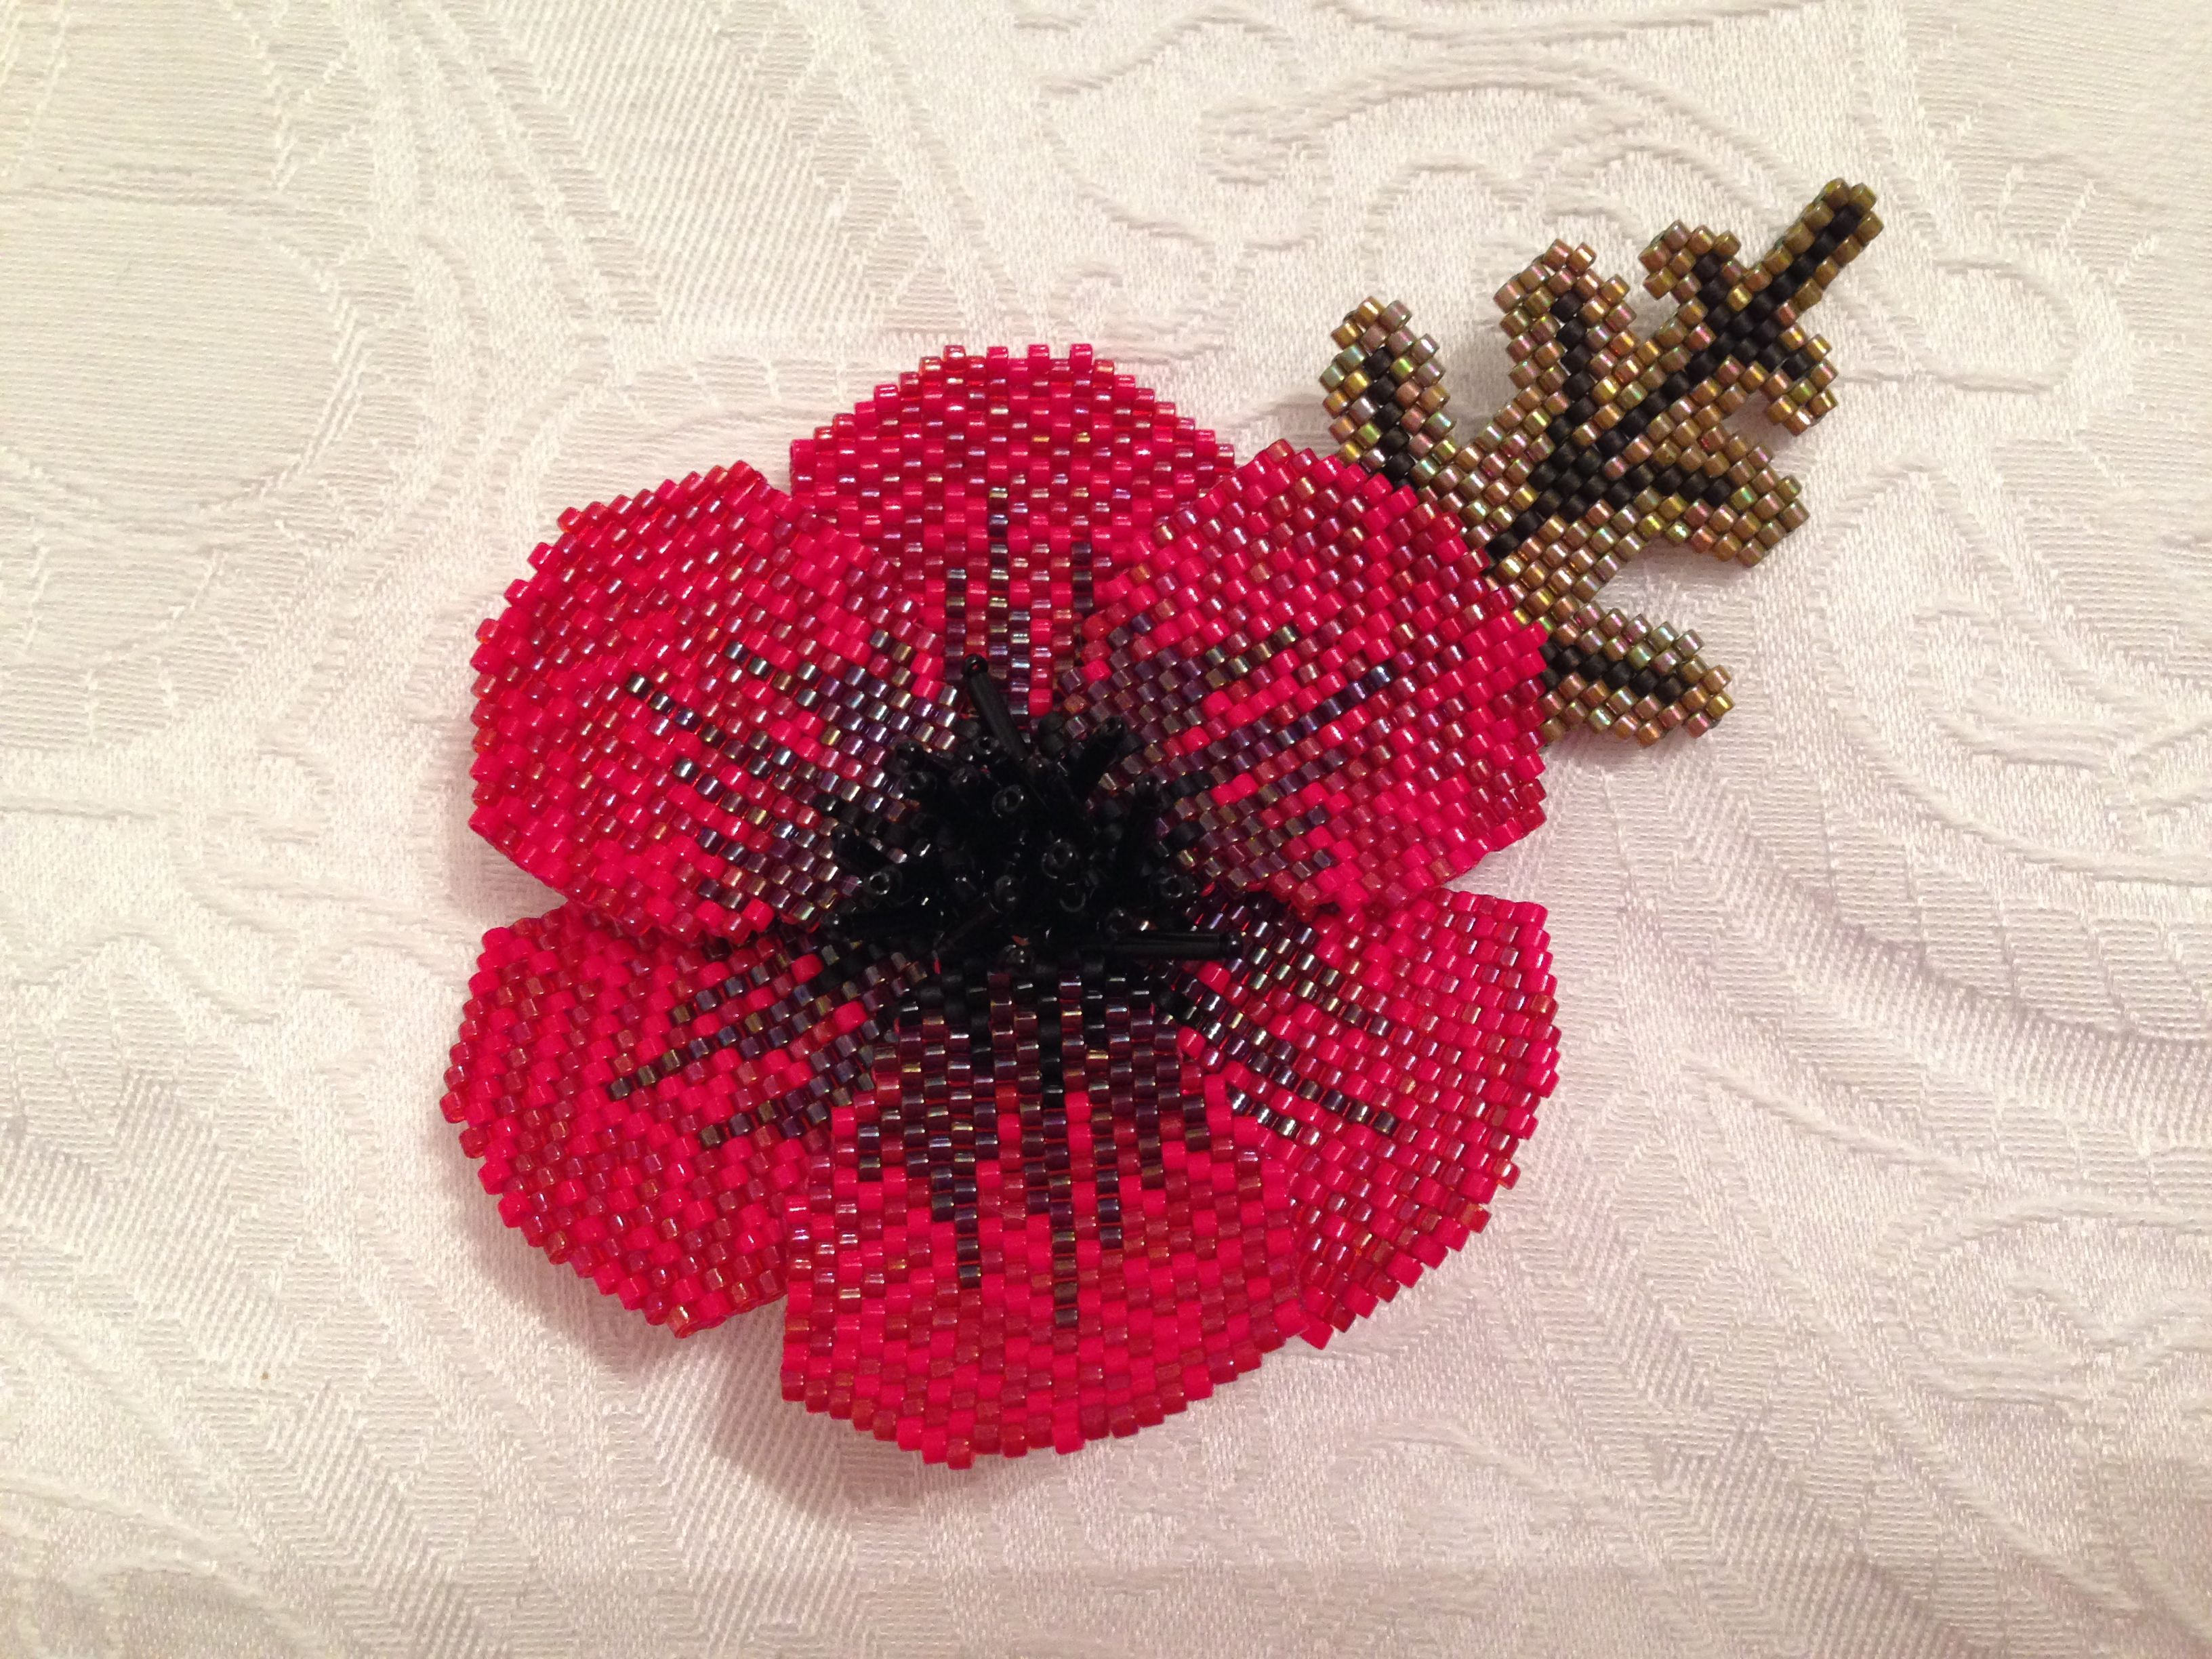 handmade beaded poppy made for remembrance day made using a